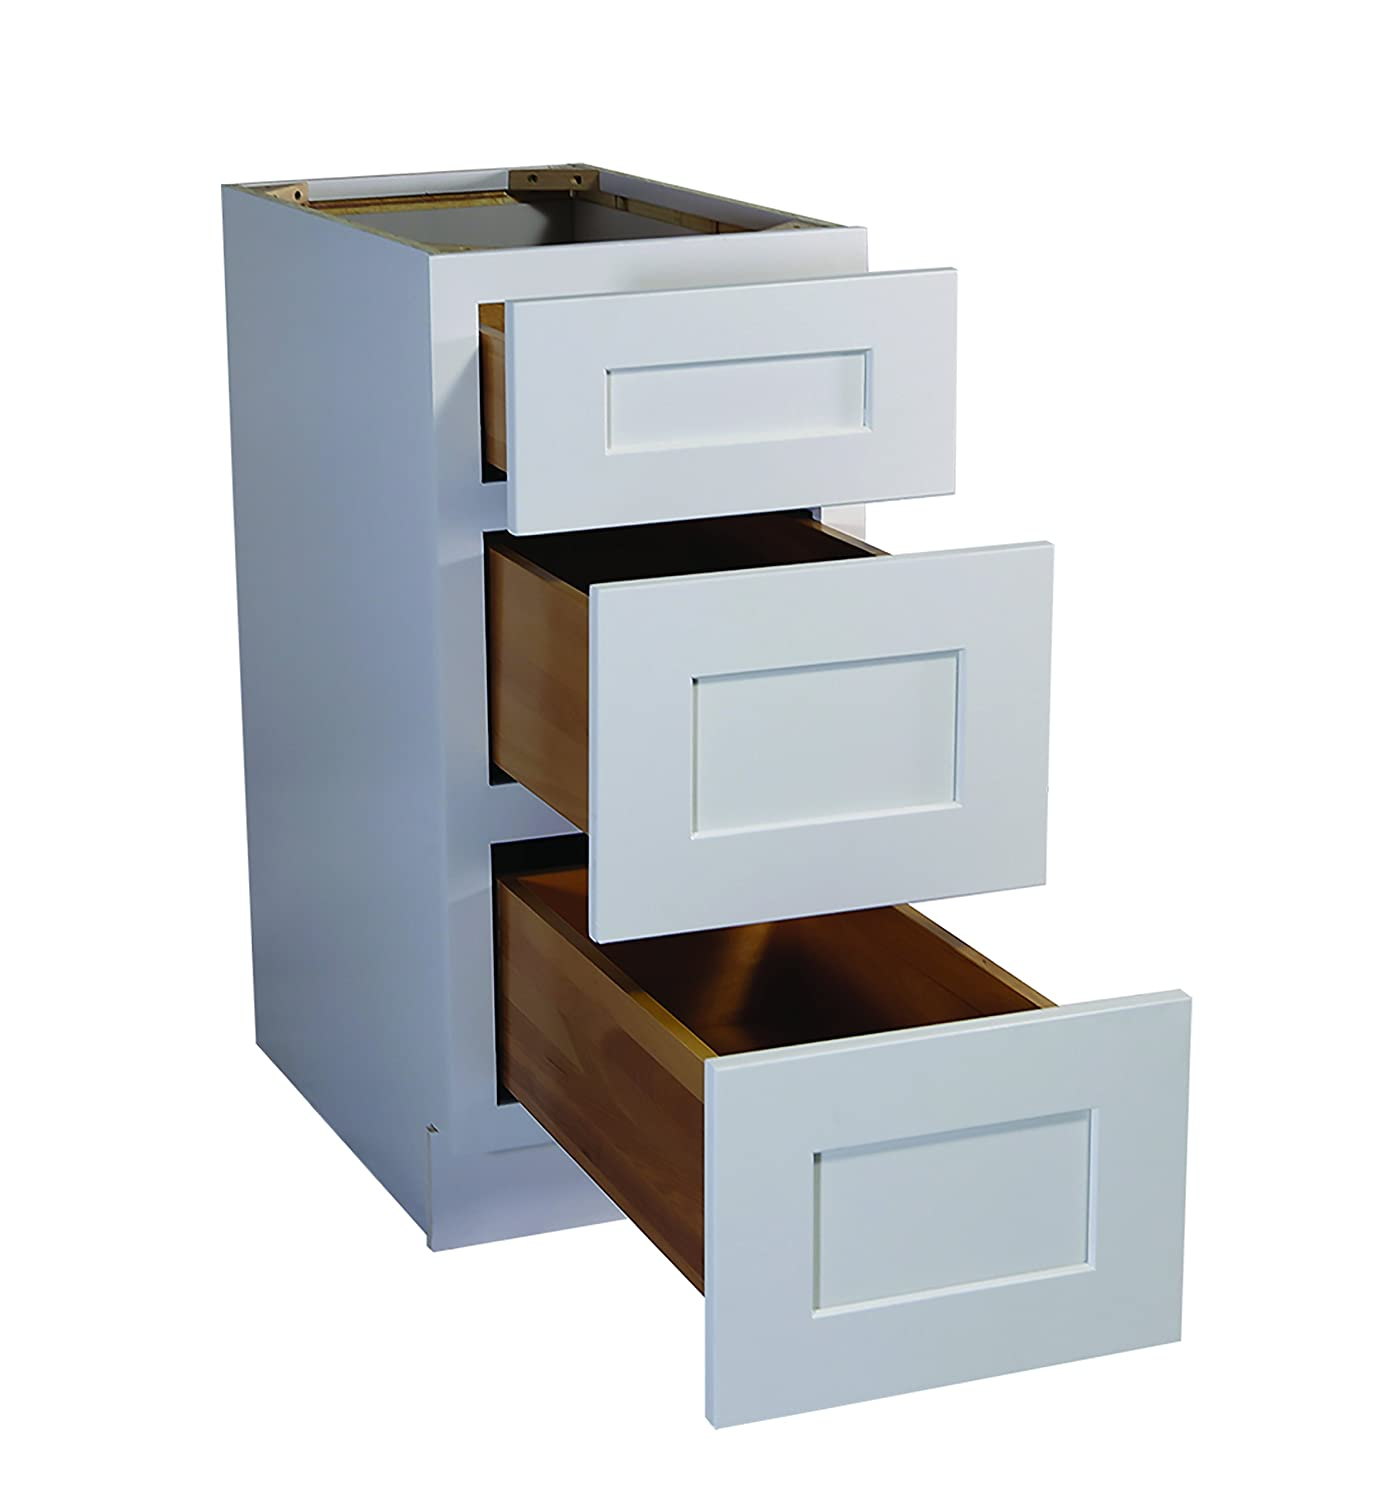 Amazon.com: Design House 561449 Brookings 12-Inch Drawer Base ...